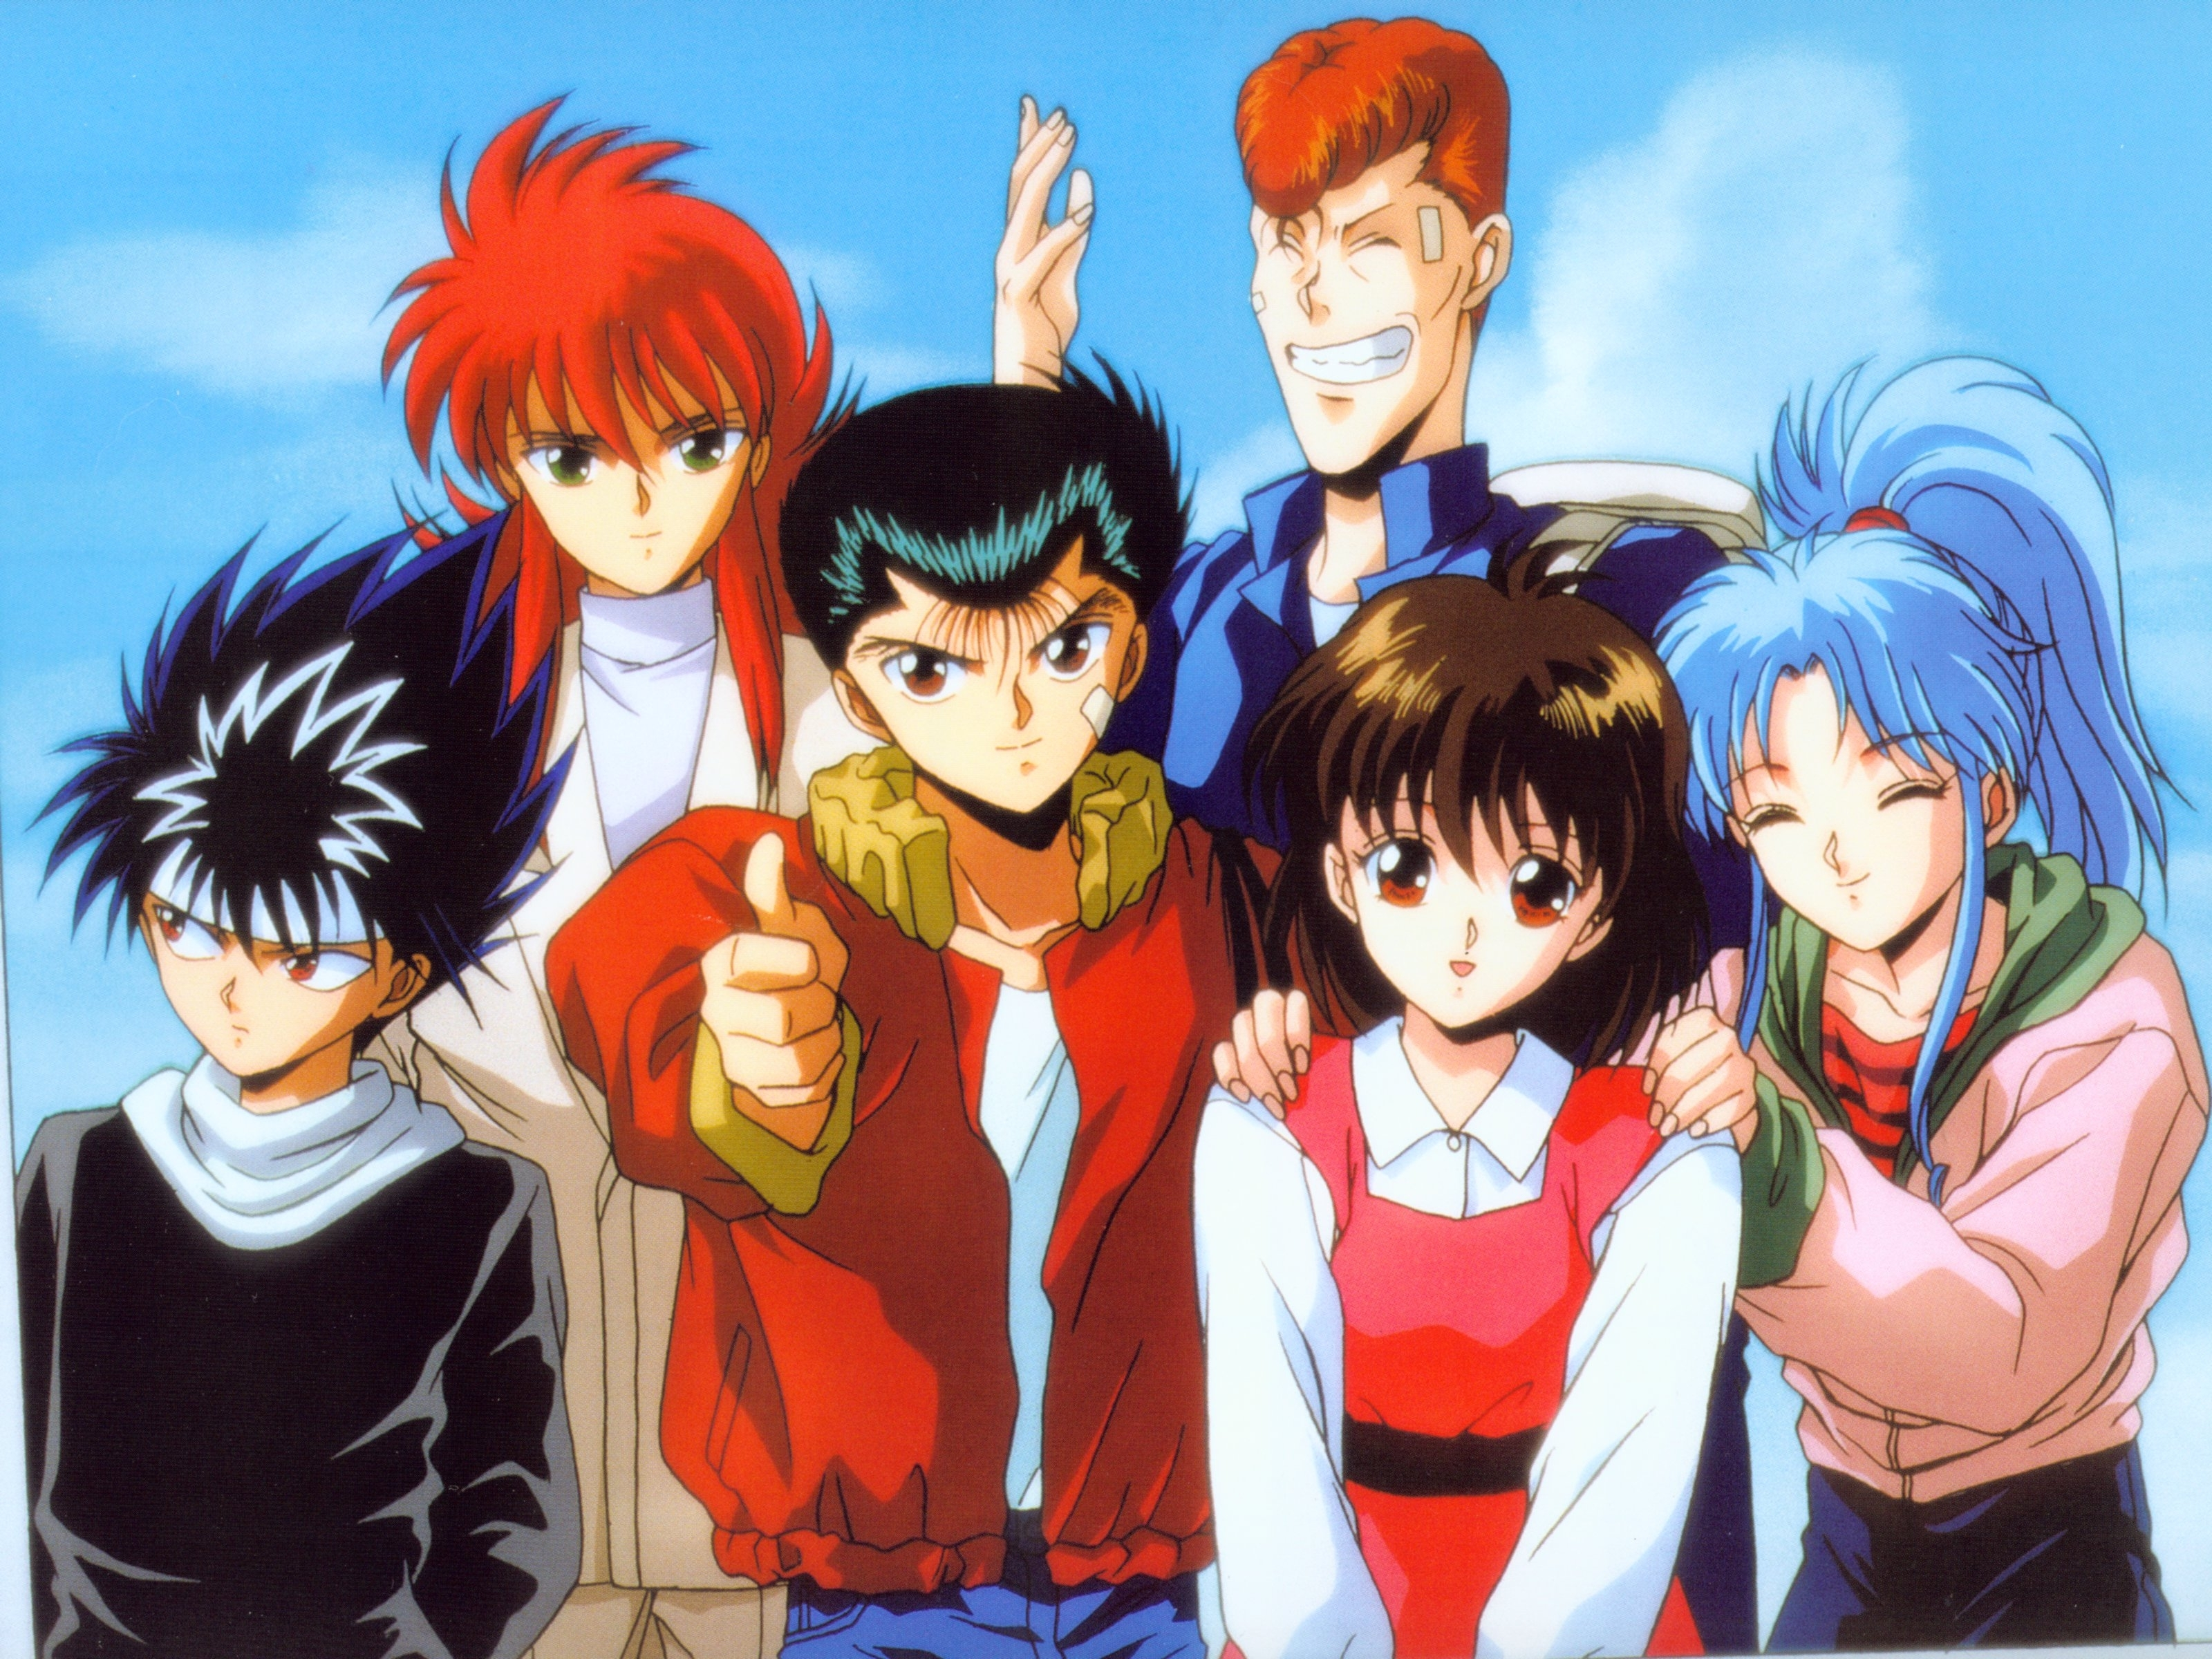 13 yu yu hakusho hd wallpapers | background images - wallpaper abyss